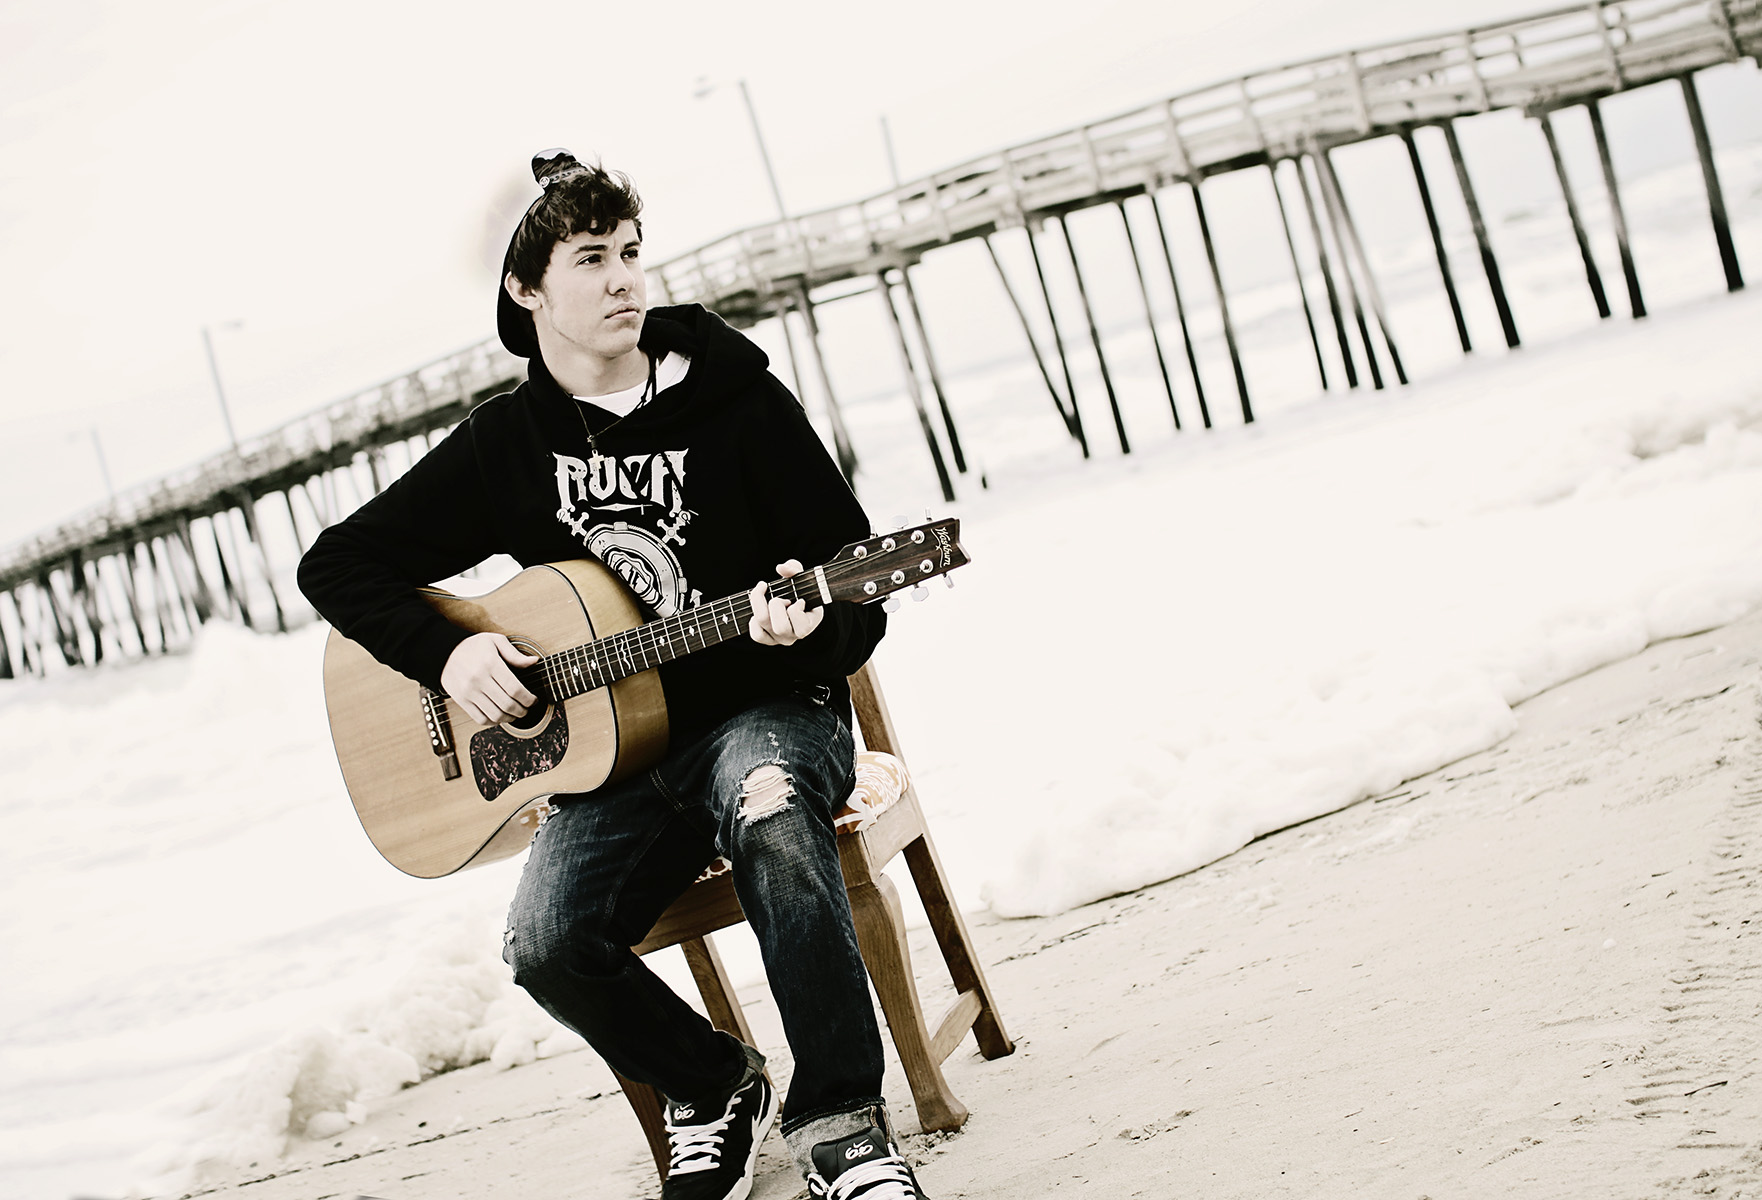 Senior guy playing guitar at the beach